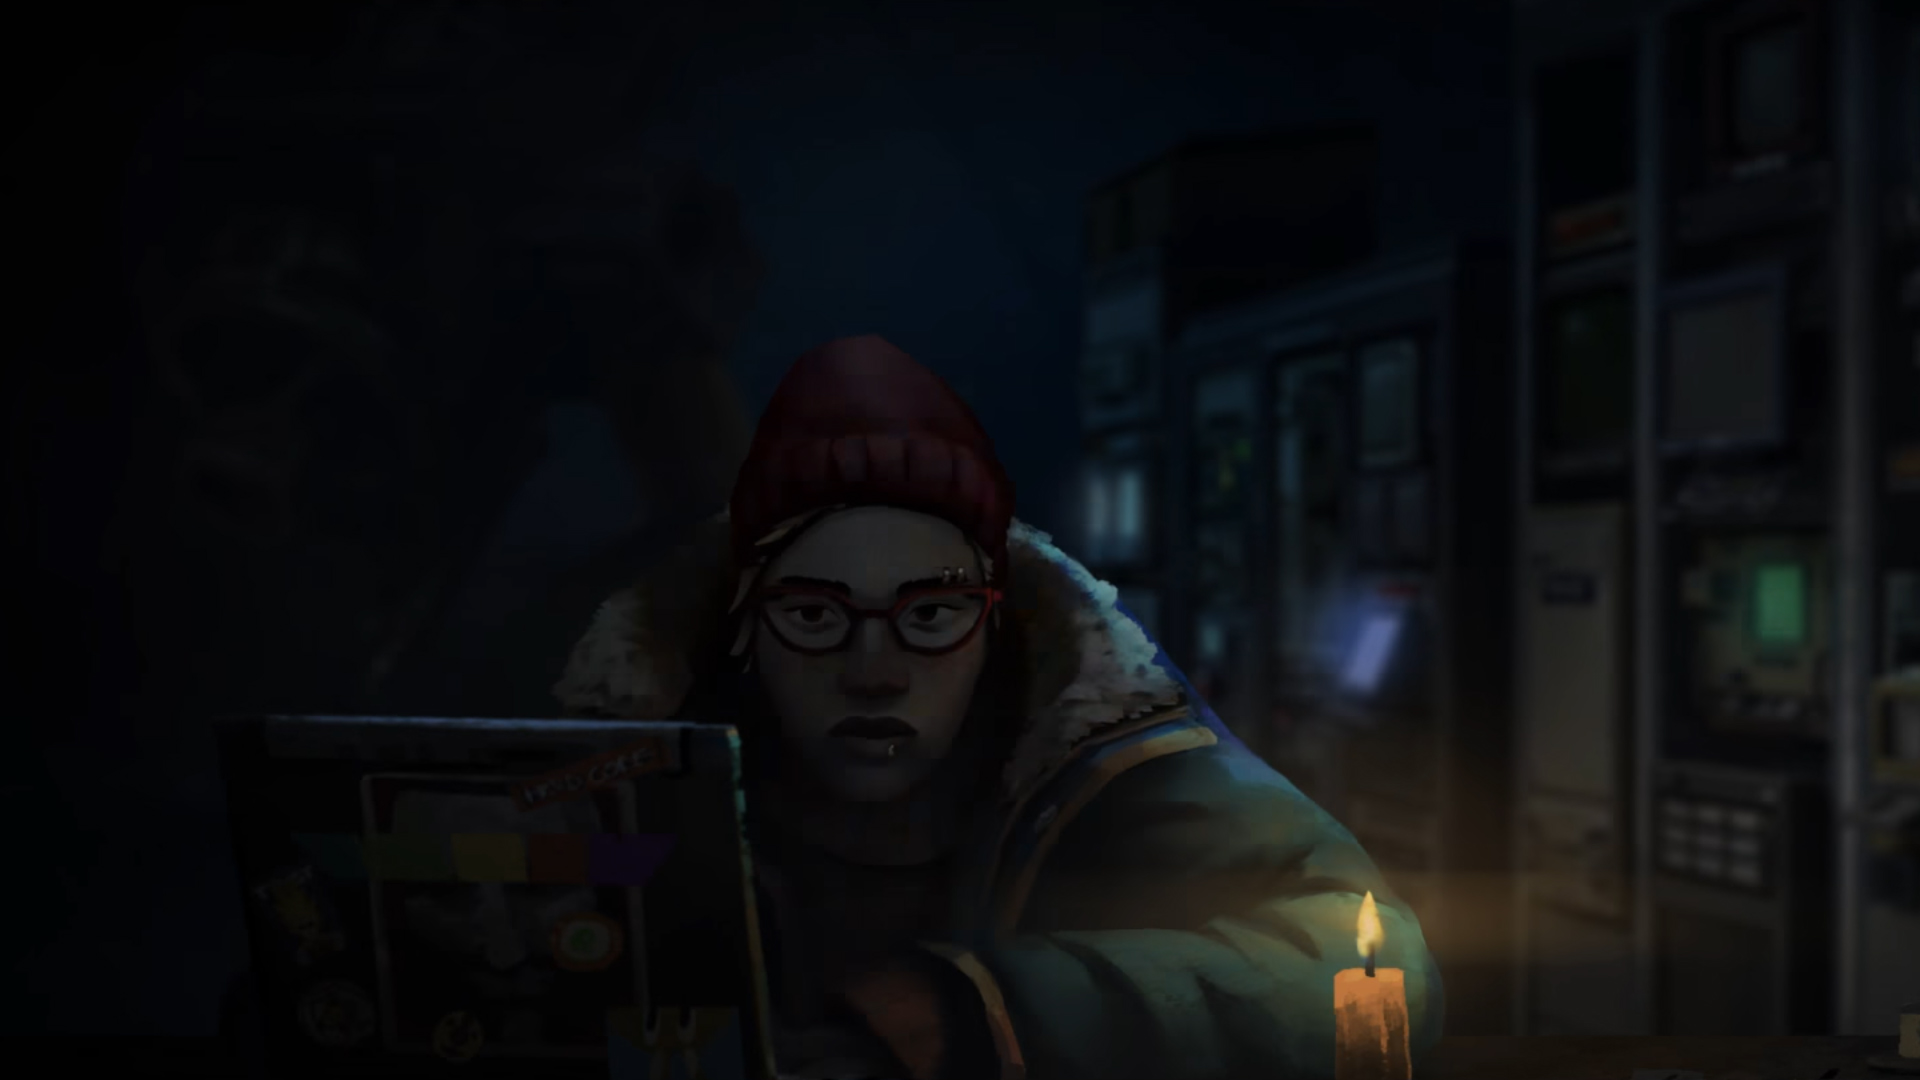 The Long Dark story mode will arrive with its first two episodes on August 1, 2017.